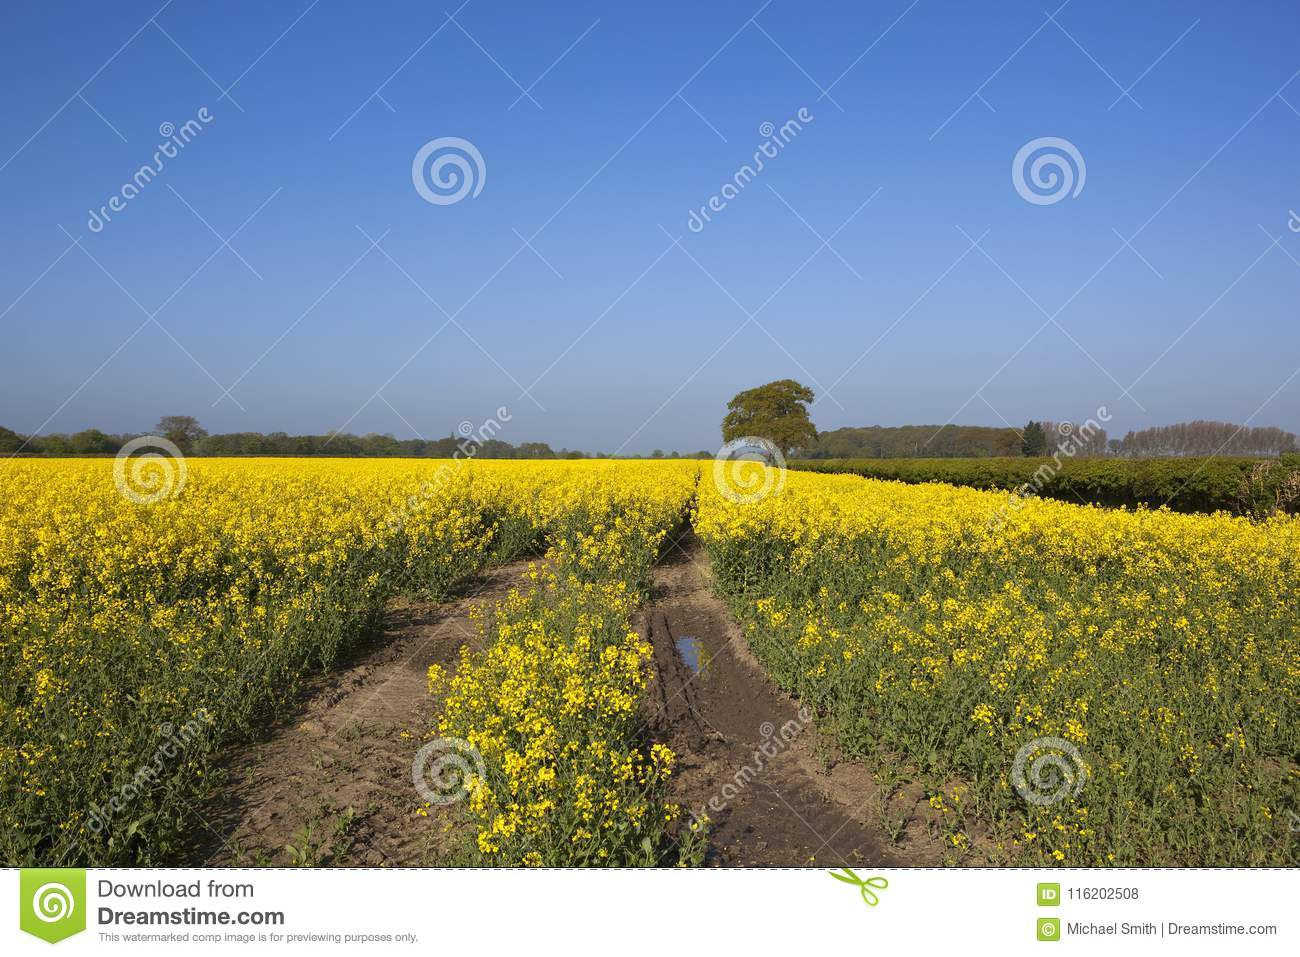 Springtime yellow flowering rapeseed crop stock photo image of download springtime yellow flowering rapeseed crop stock photo image of flowers climate 116202508 mightylinksfo